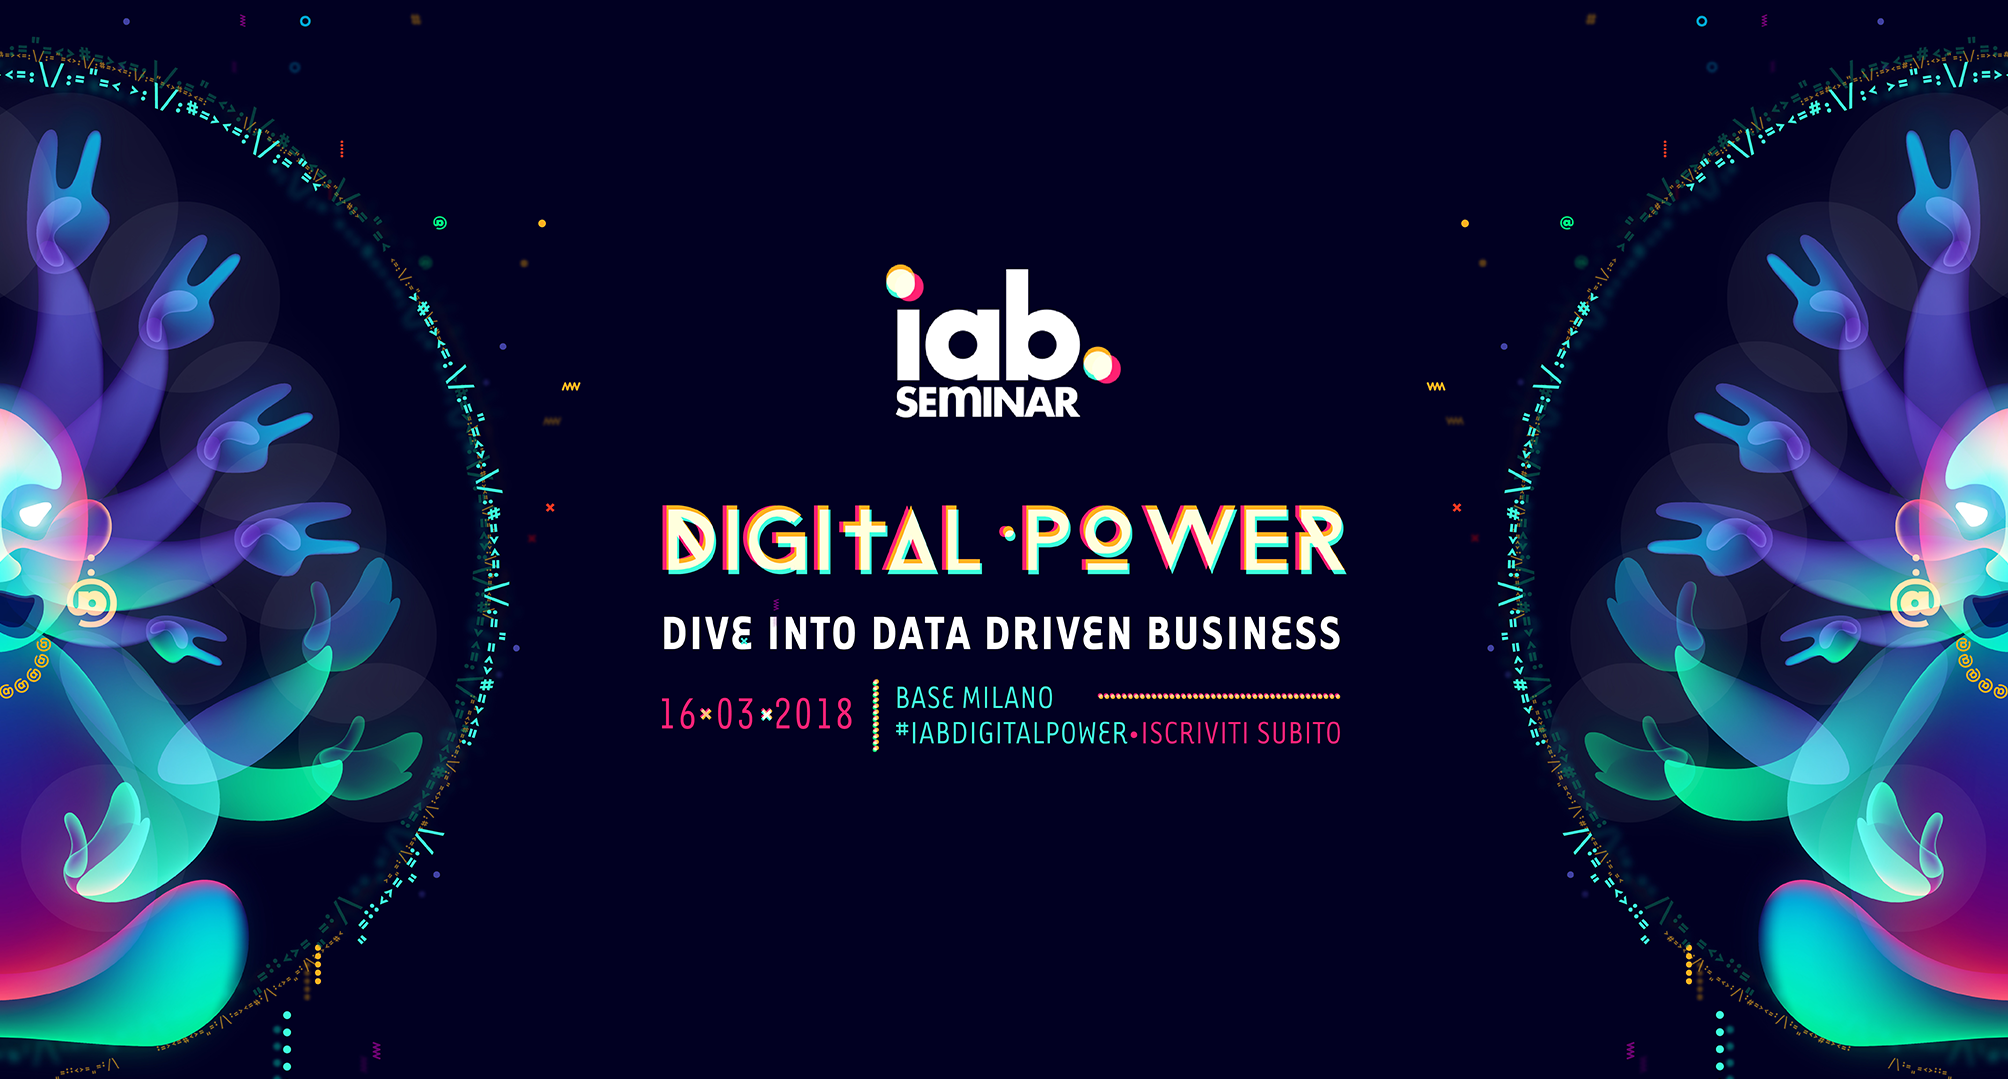 IAB Seminar Digital Power: è online l'agenda dell'evento!